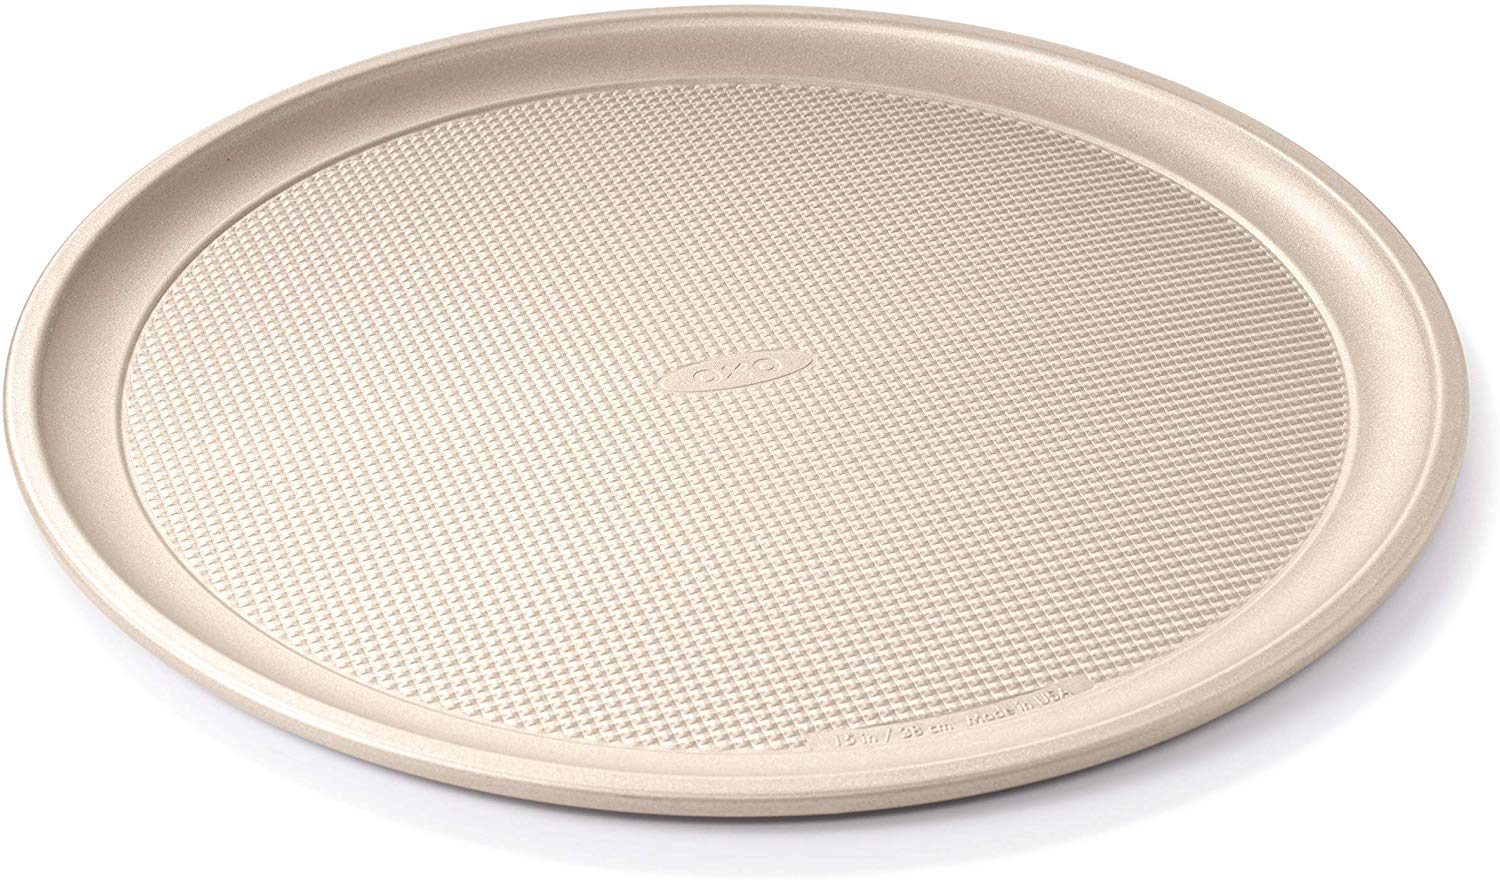 Oxo good grips non-stick pro pizza pan